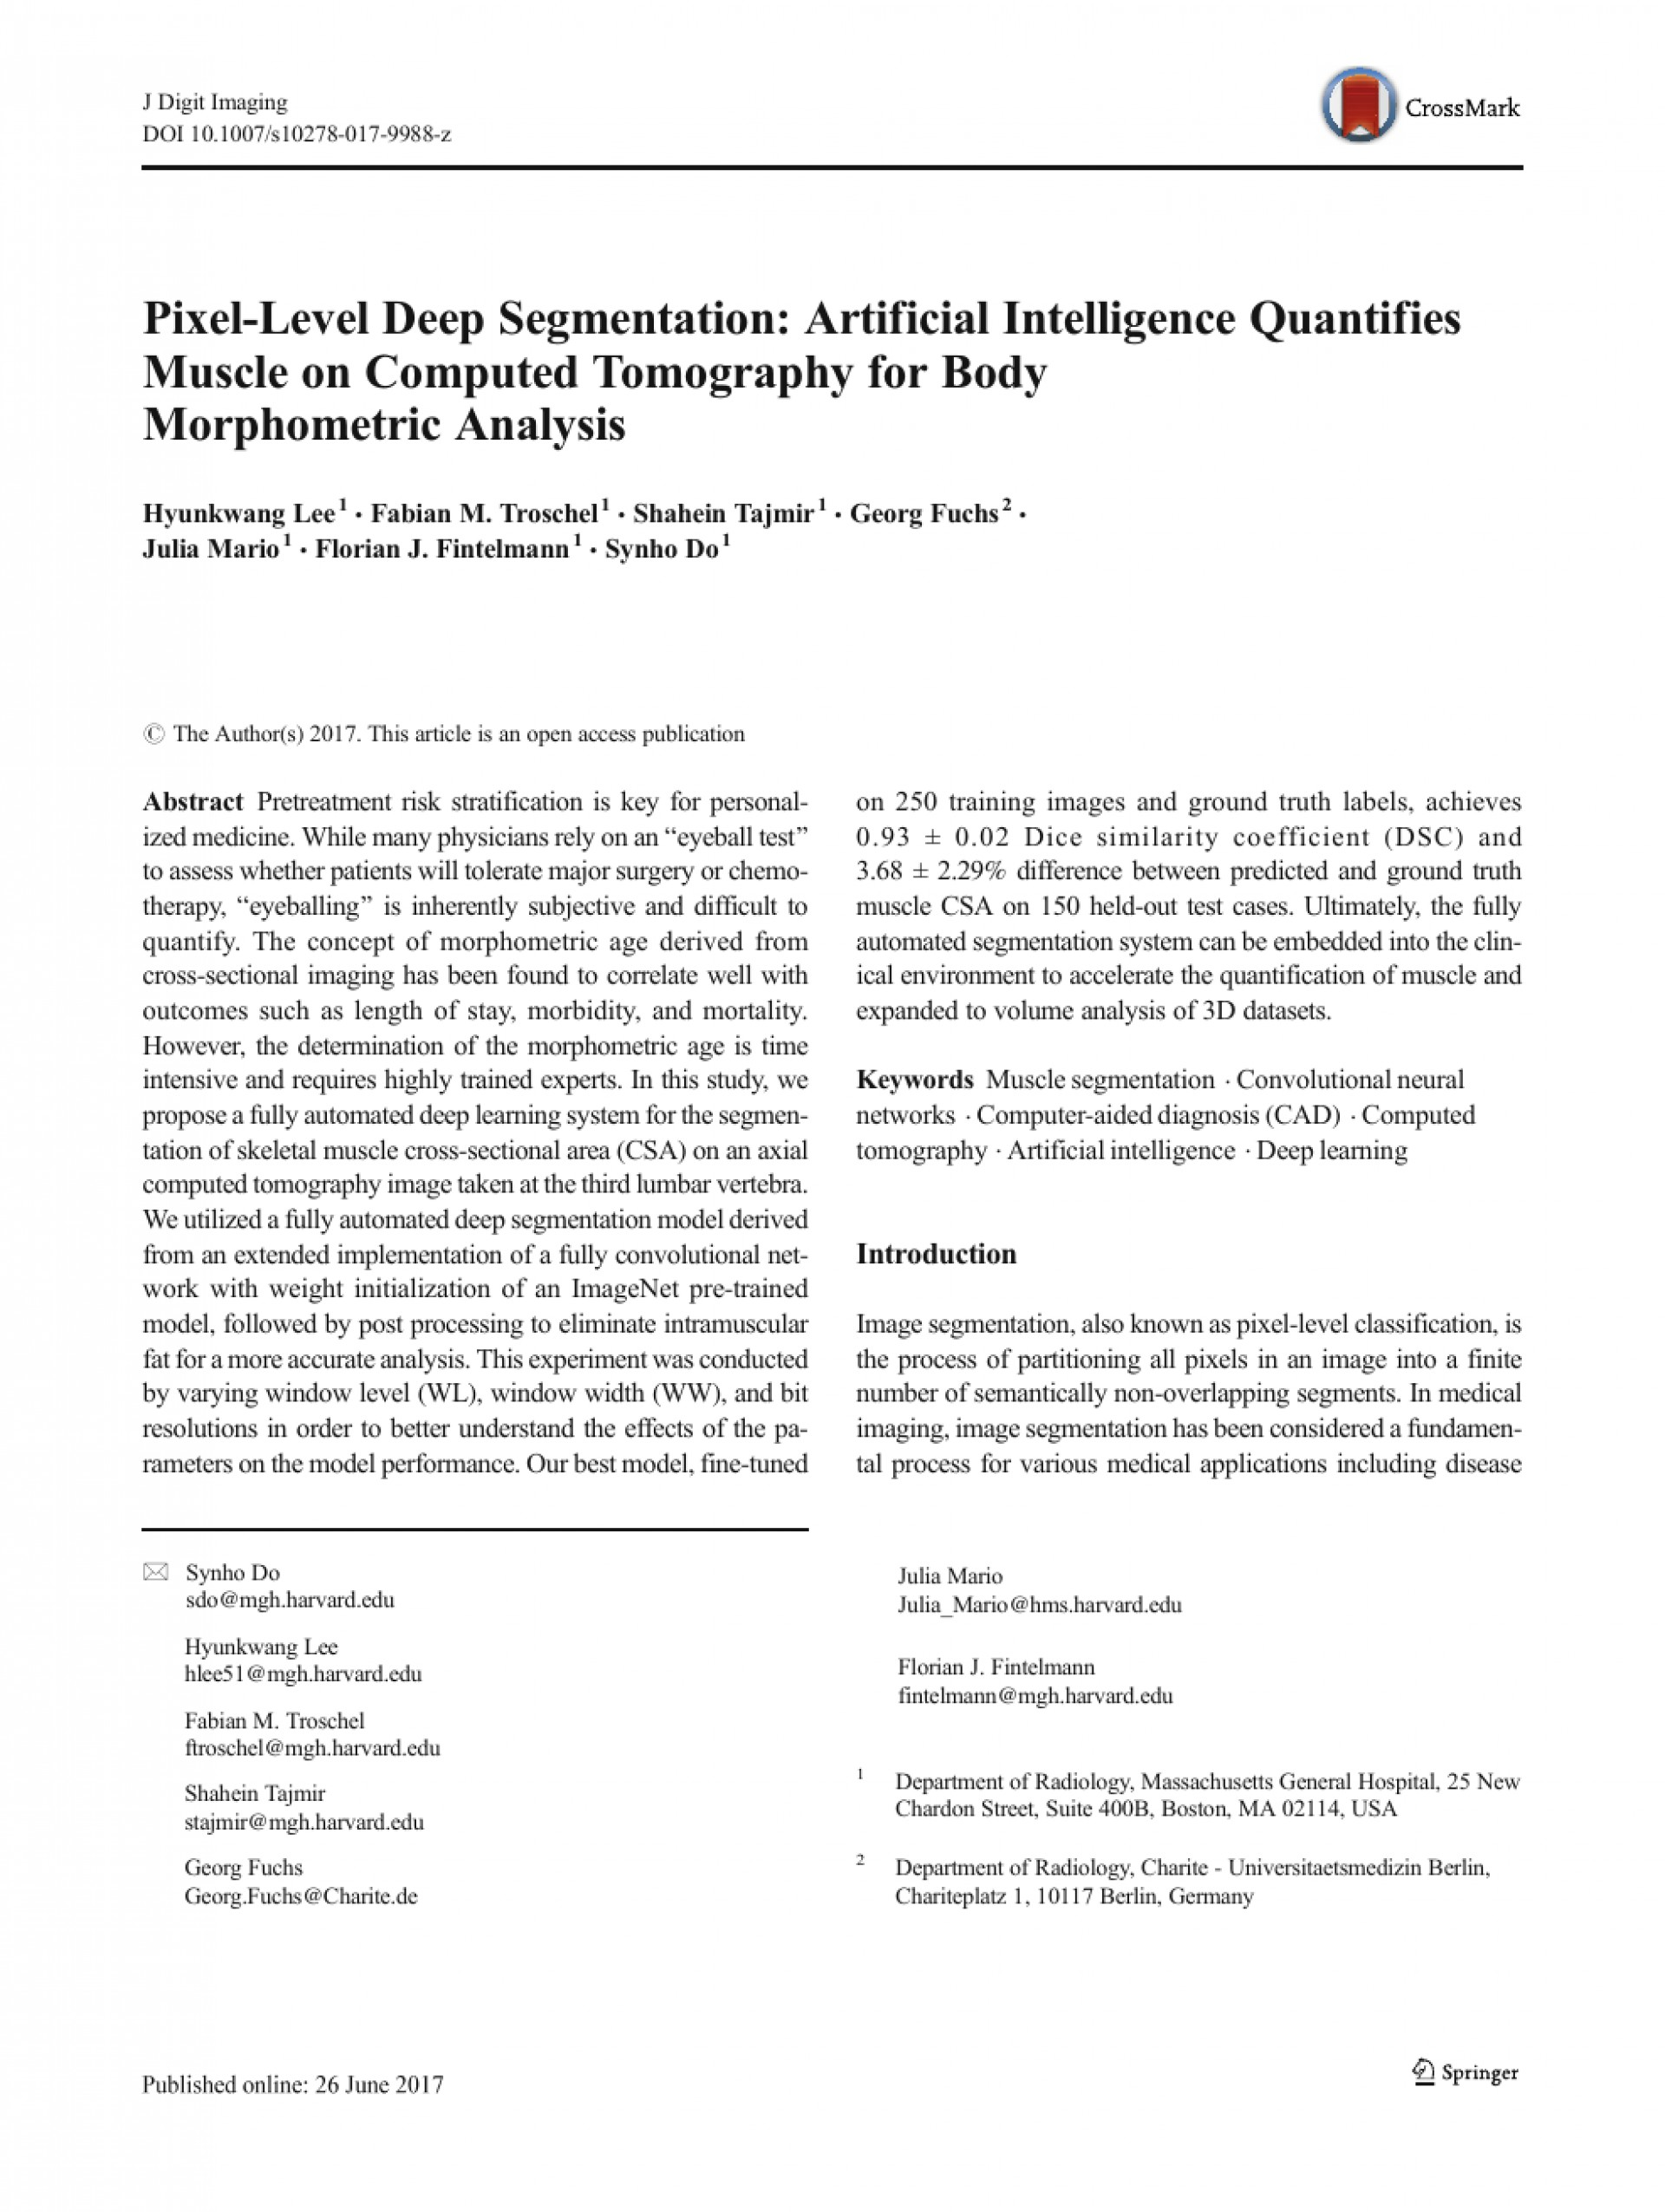 003 Research Paper Artificial Intelligence Awful 2019 1920